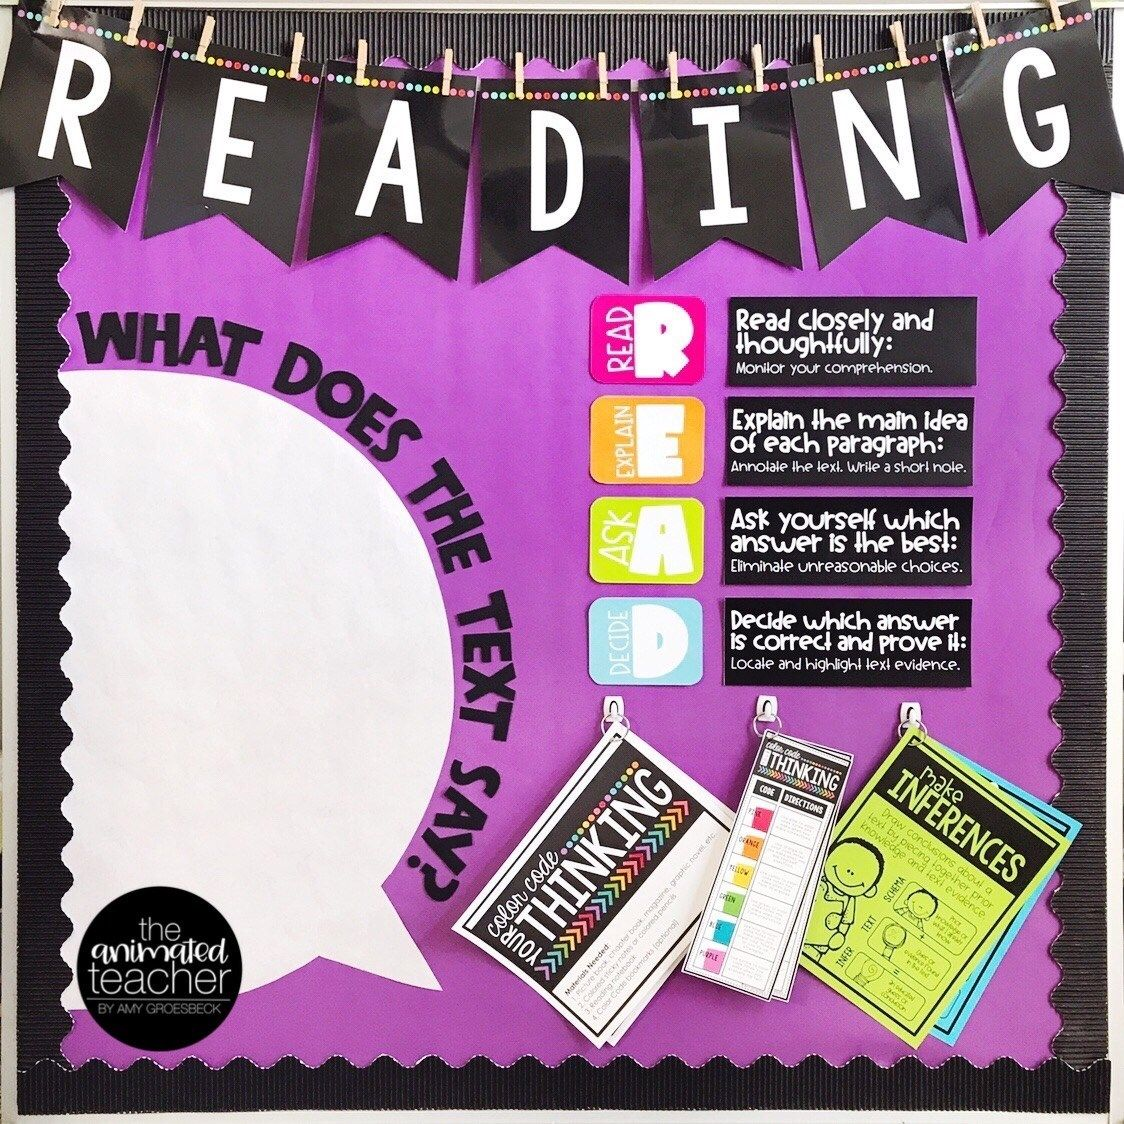 The Interactive Speech Bubble Reading instruction